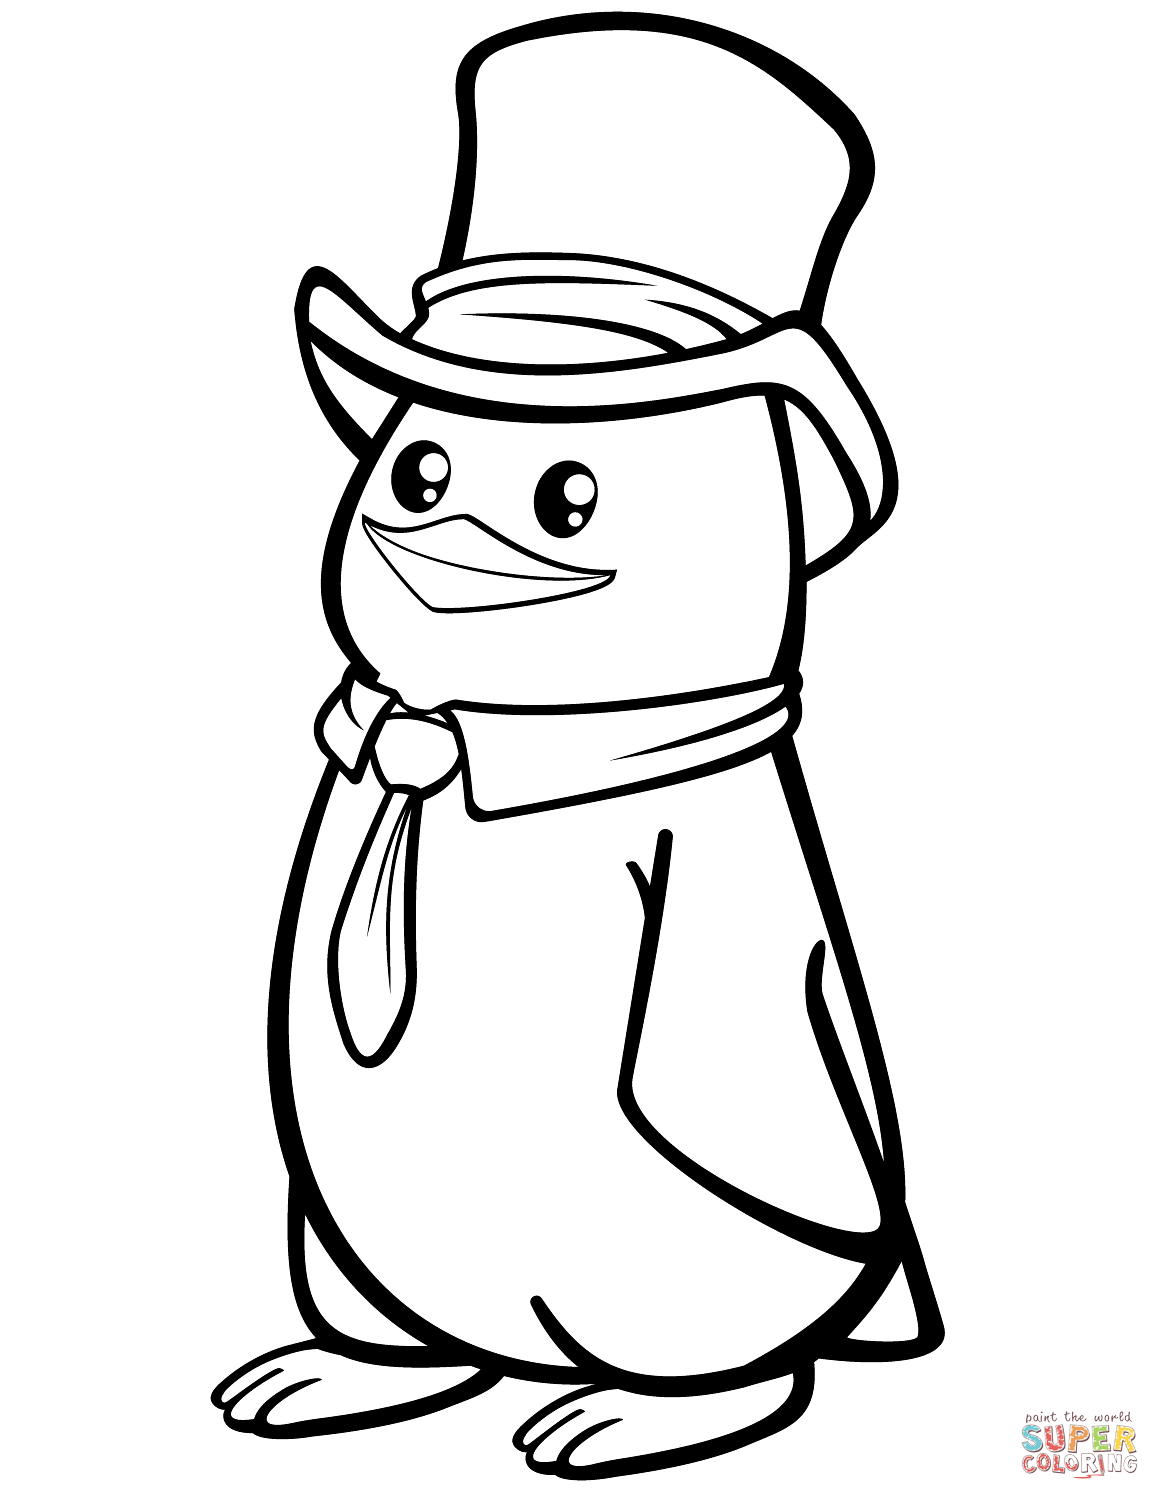 coloring page of penguin polar penguin with a top hat coloring page free of penguin page coloring